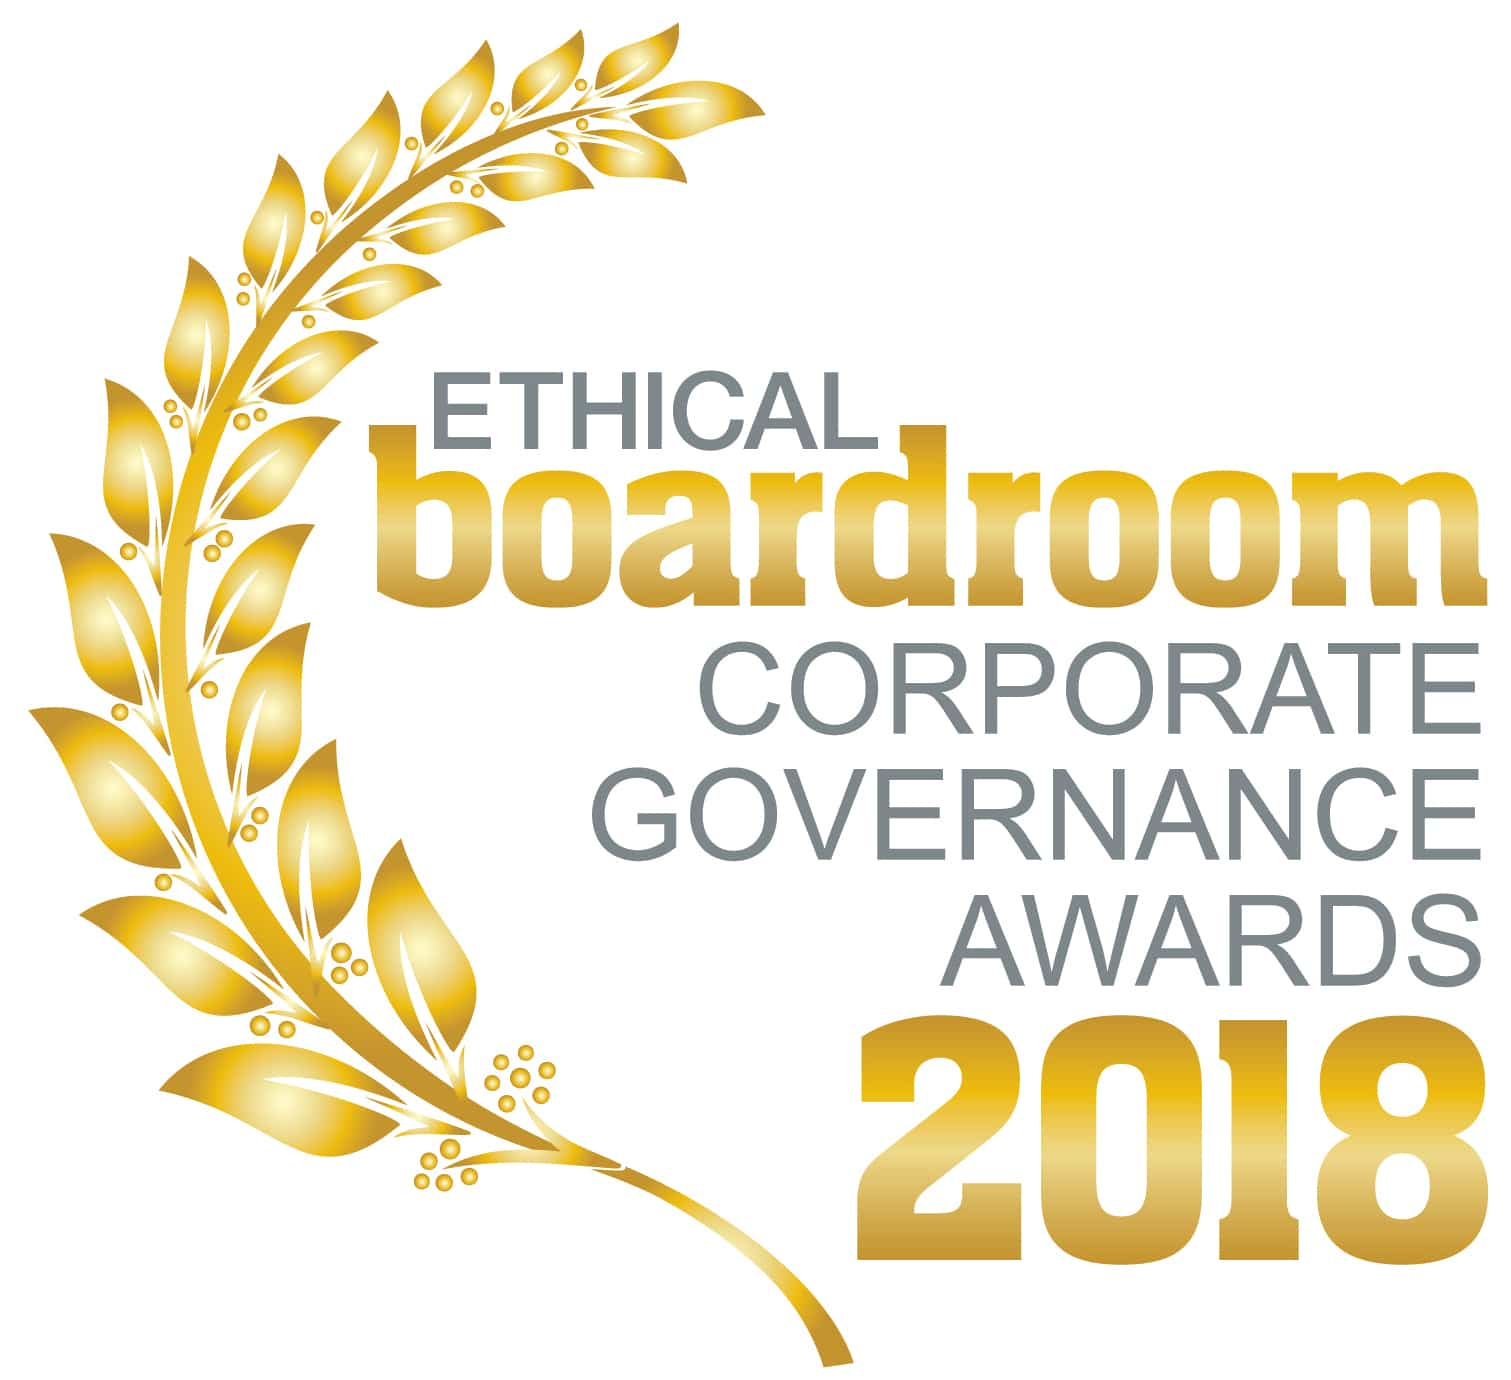 Corporate Governance Winners 2018 - Europe Ethical Boardroom